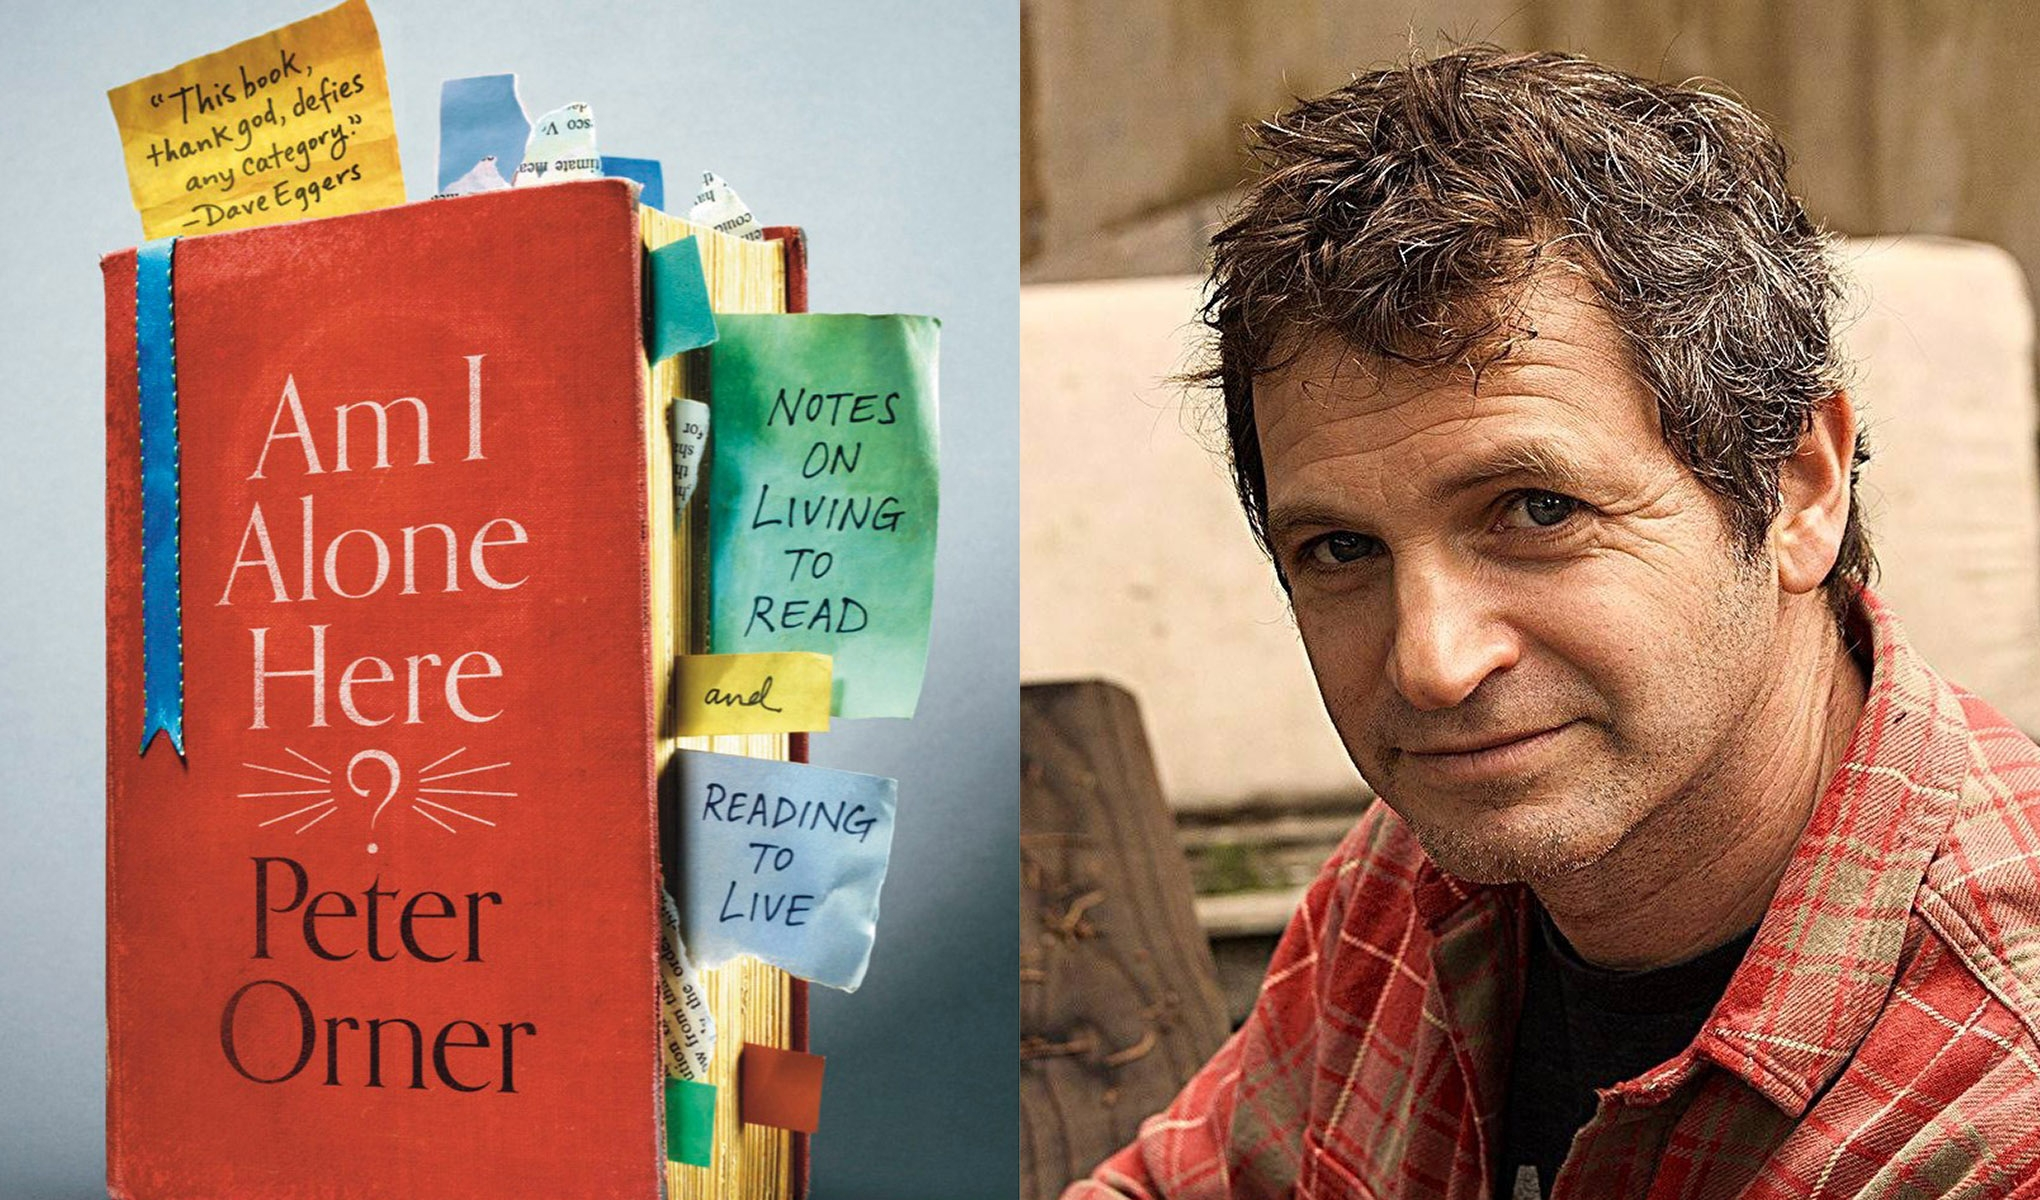 A headshot of author Peter Orner and his new book